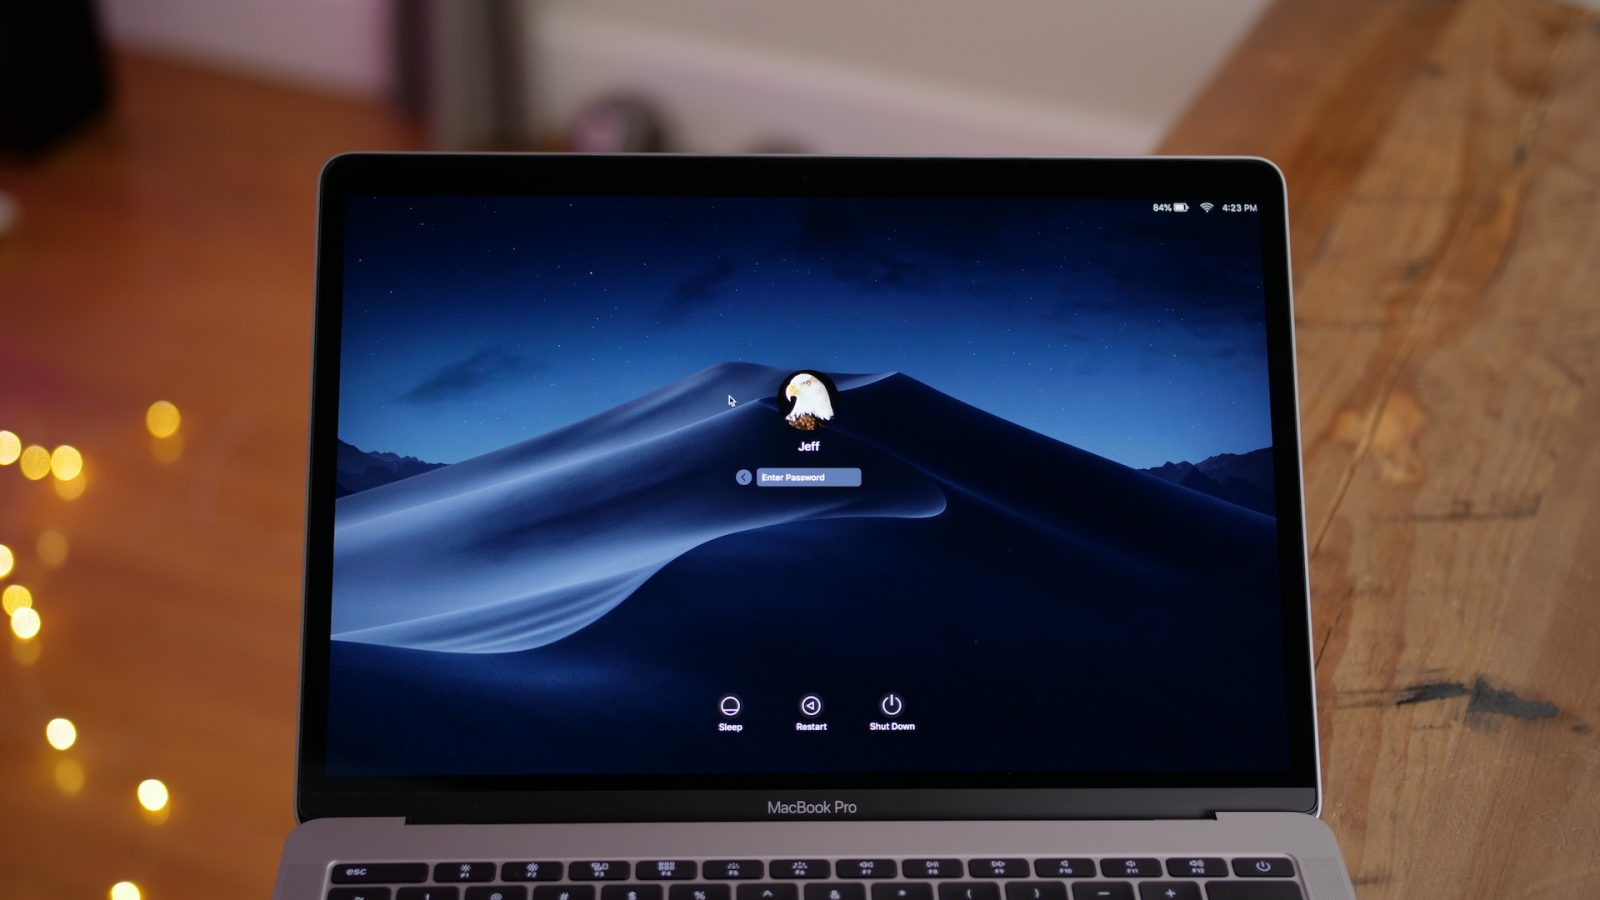 Apple shares information for running macOS Mojave on a Mac